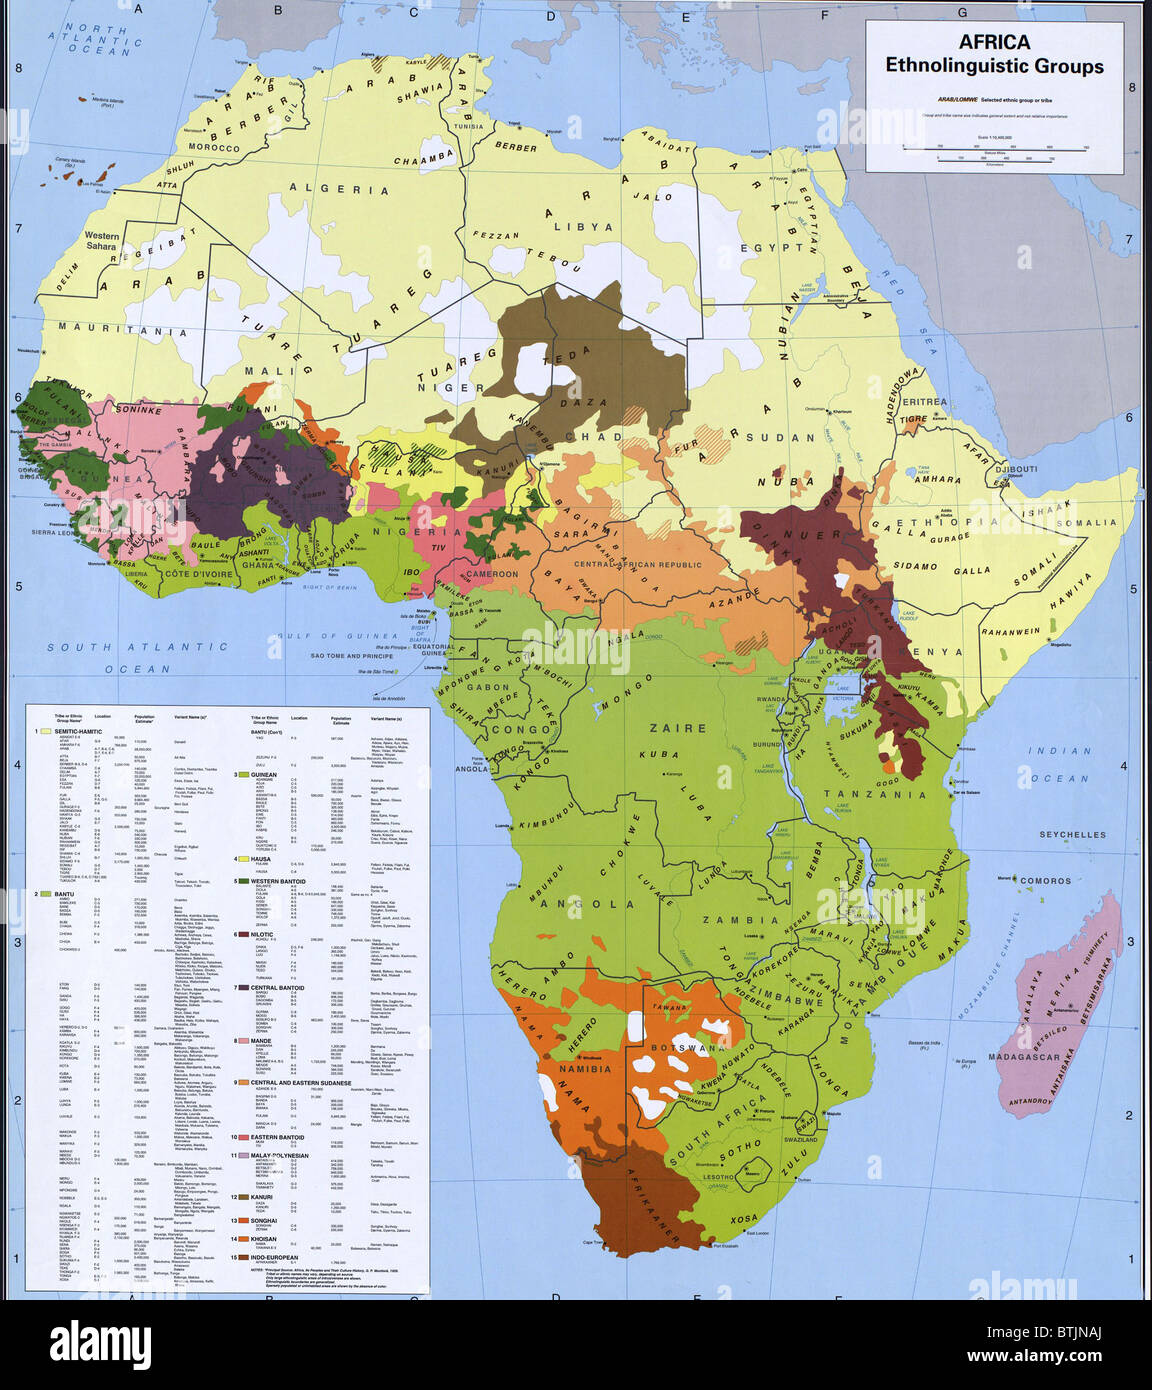 Map showing ethnology and linguistic groups of Africa that conflict with  national boundaries, based on European - Stock Image